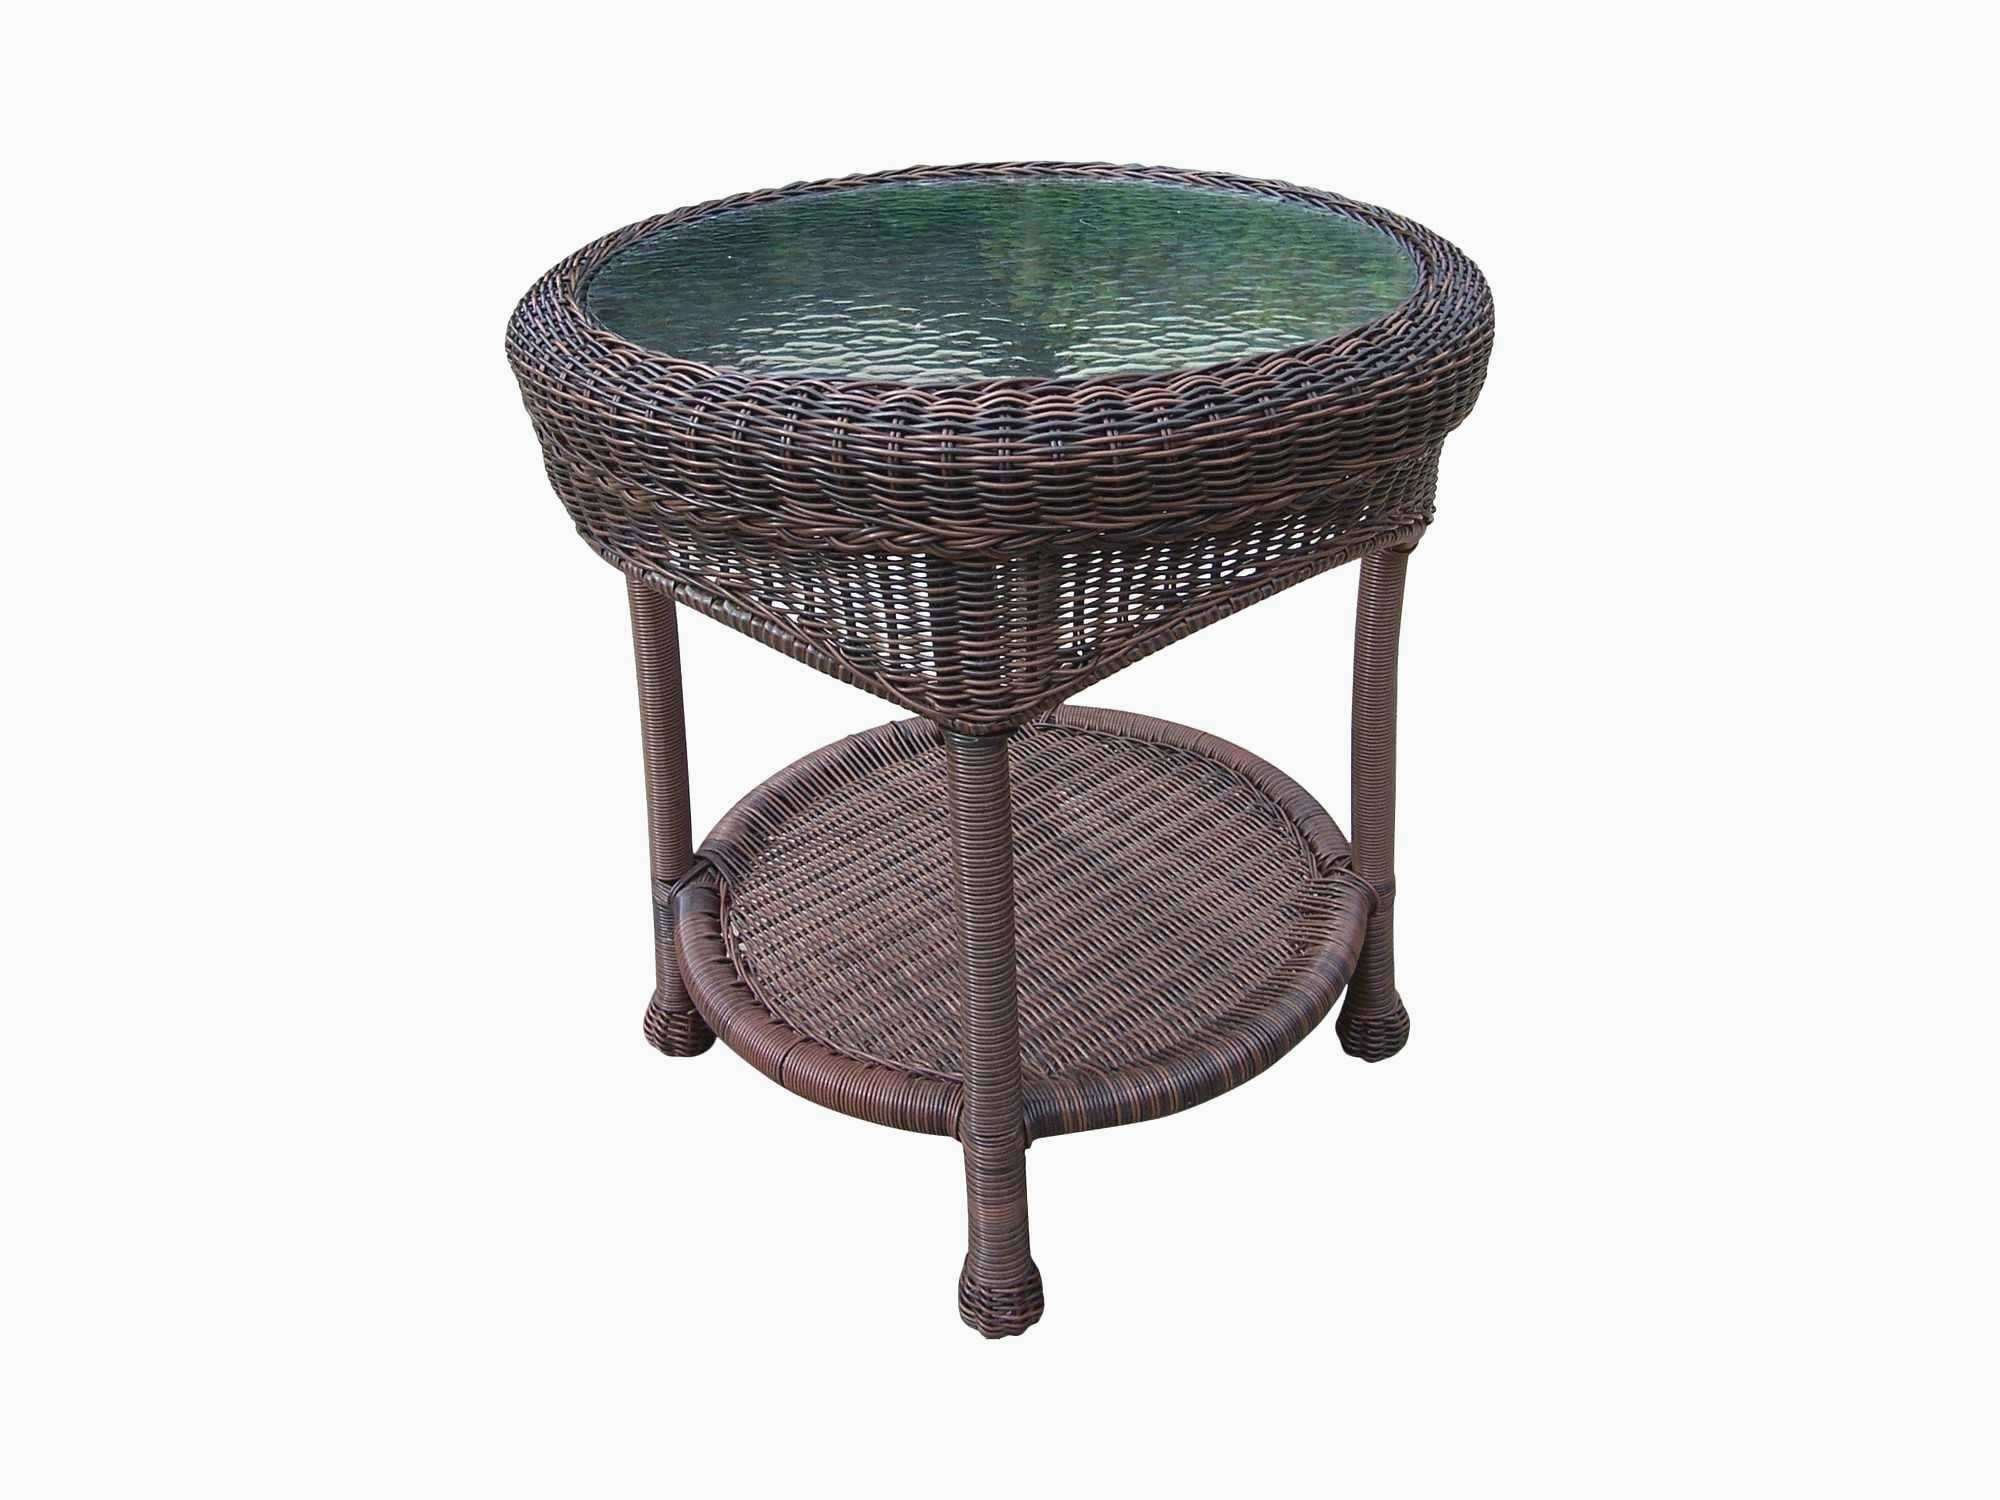 metal and tile coffee table majestic top mosaic accent outdoor ideas benestuff round kitchen chairs set garden storage solutions clear gold reproduction designer furniture